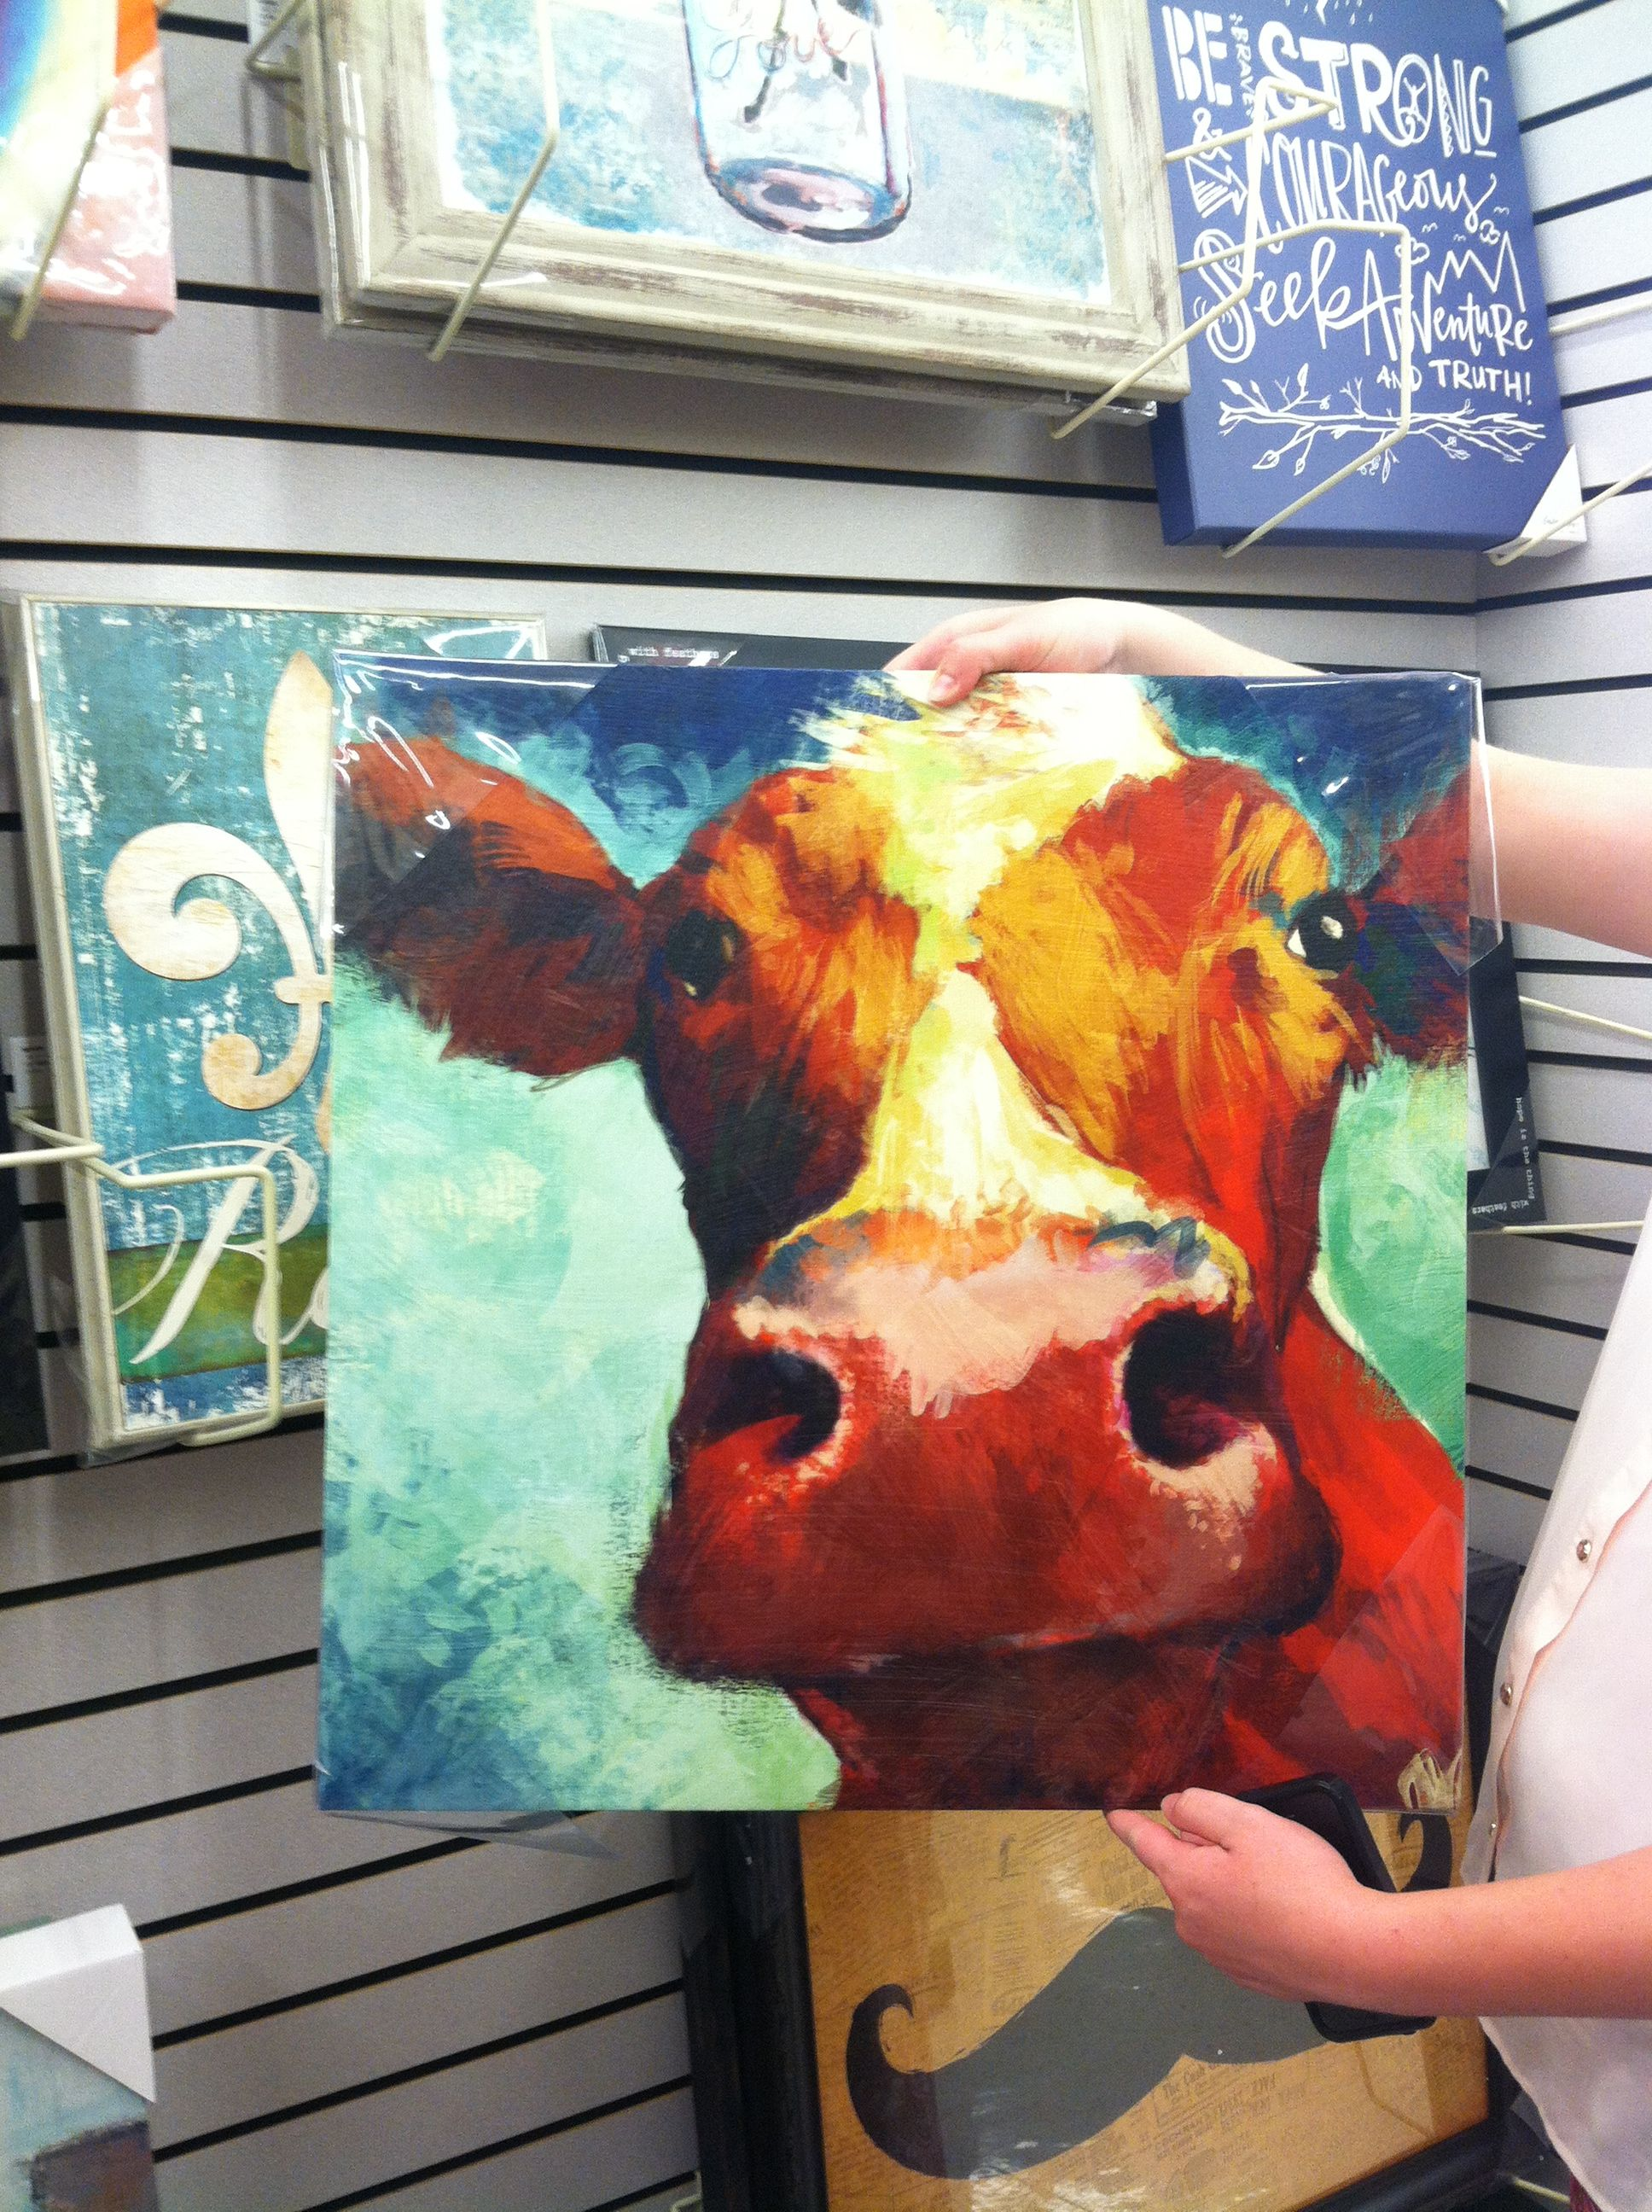 Hobby Lobby Cow Face Meagan6 This Is What I Saw Haha Cow Art Art Hobbies Painting